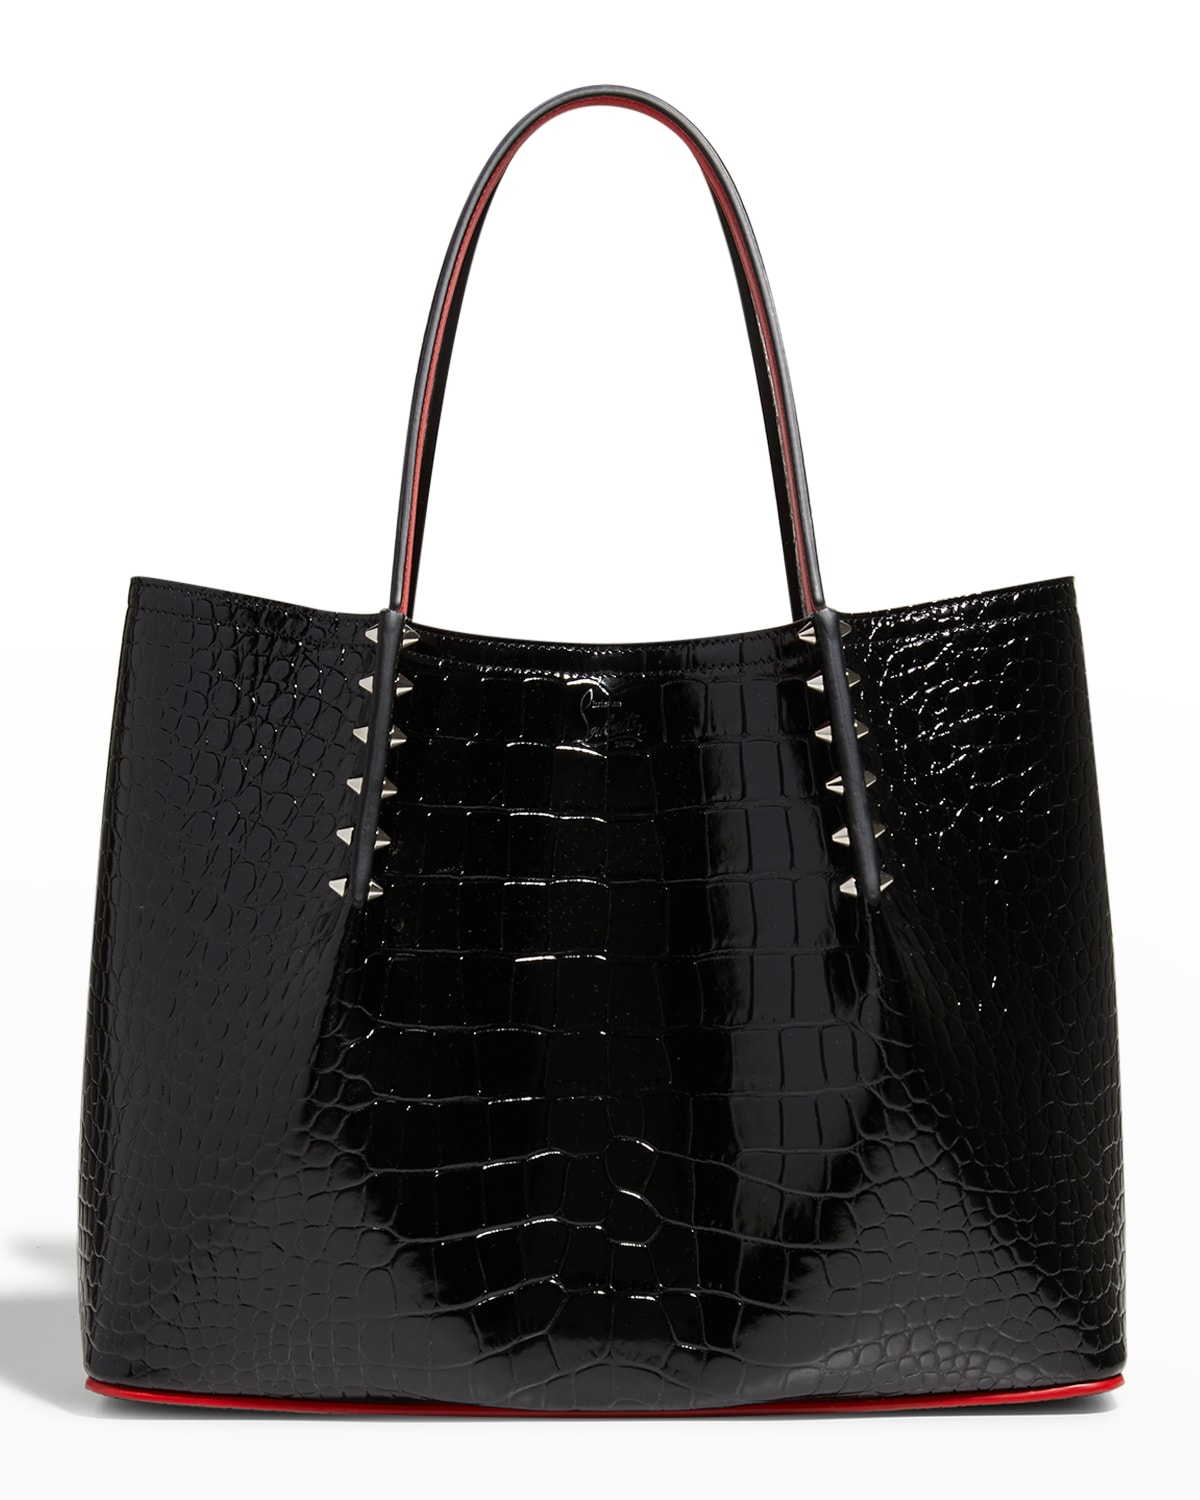 Cabarock Small Mock-Croc Spiked Shopper Tote Bag